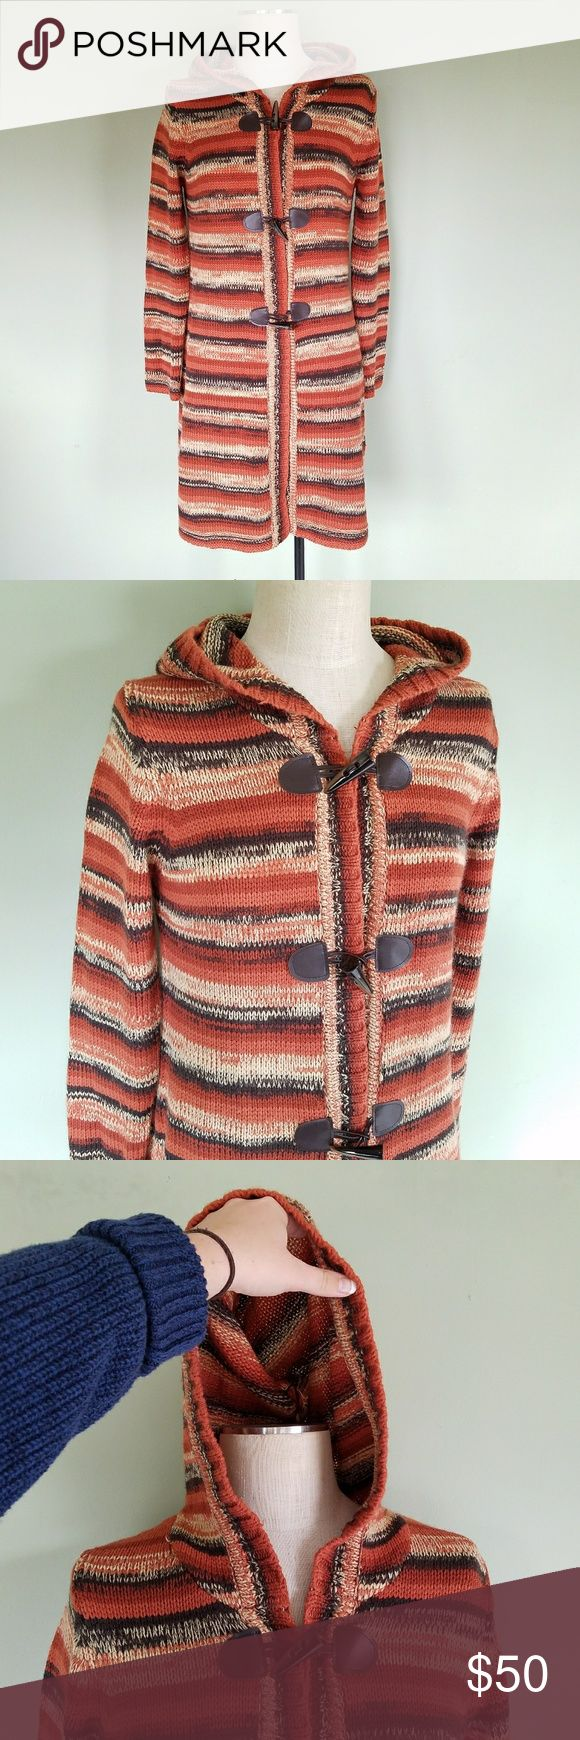 Through the Country Door Hooded Toggle Cardigan Through the Country Door brand.  Women's Medium. Relaxed fit.  Long duster cardigan sweater. Long Sleeve. Hooded. Multi Orange / Brown Striped. Toggle - faux leather closure front. Knitted. 100% Acrylic. Boho Chic, Rustic, Gypsy style.  Perfect for a colorful fall layered look.  Excellent condition! Through The Country Door Sweaters Cardigans